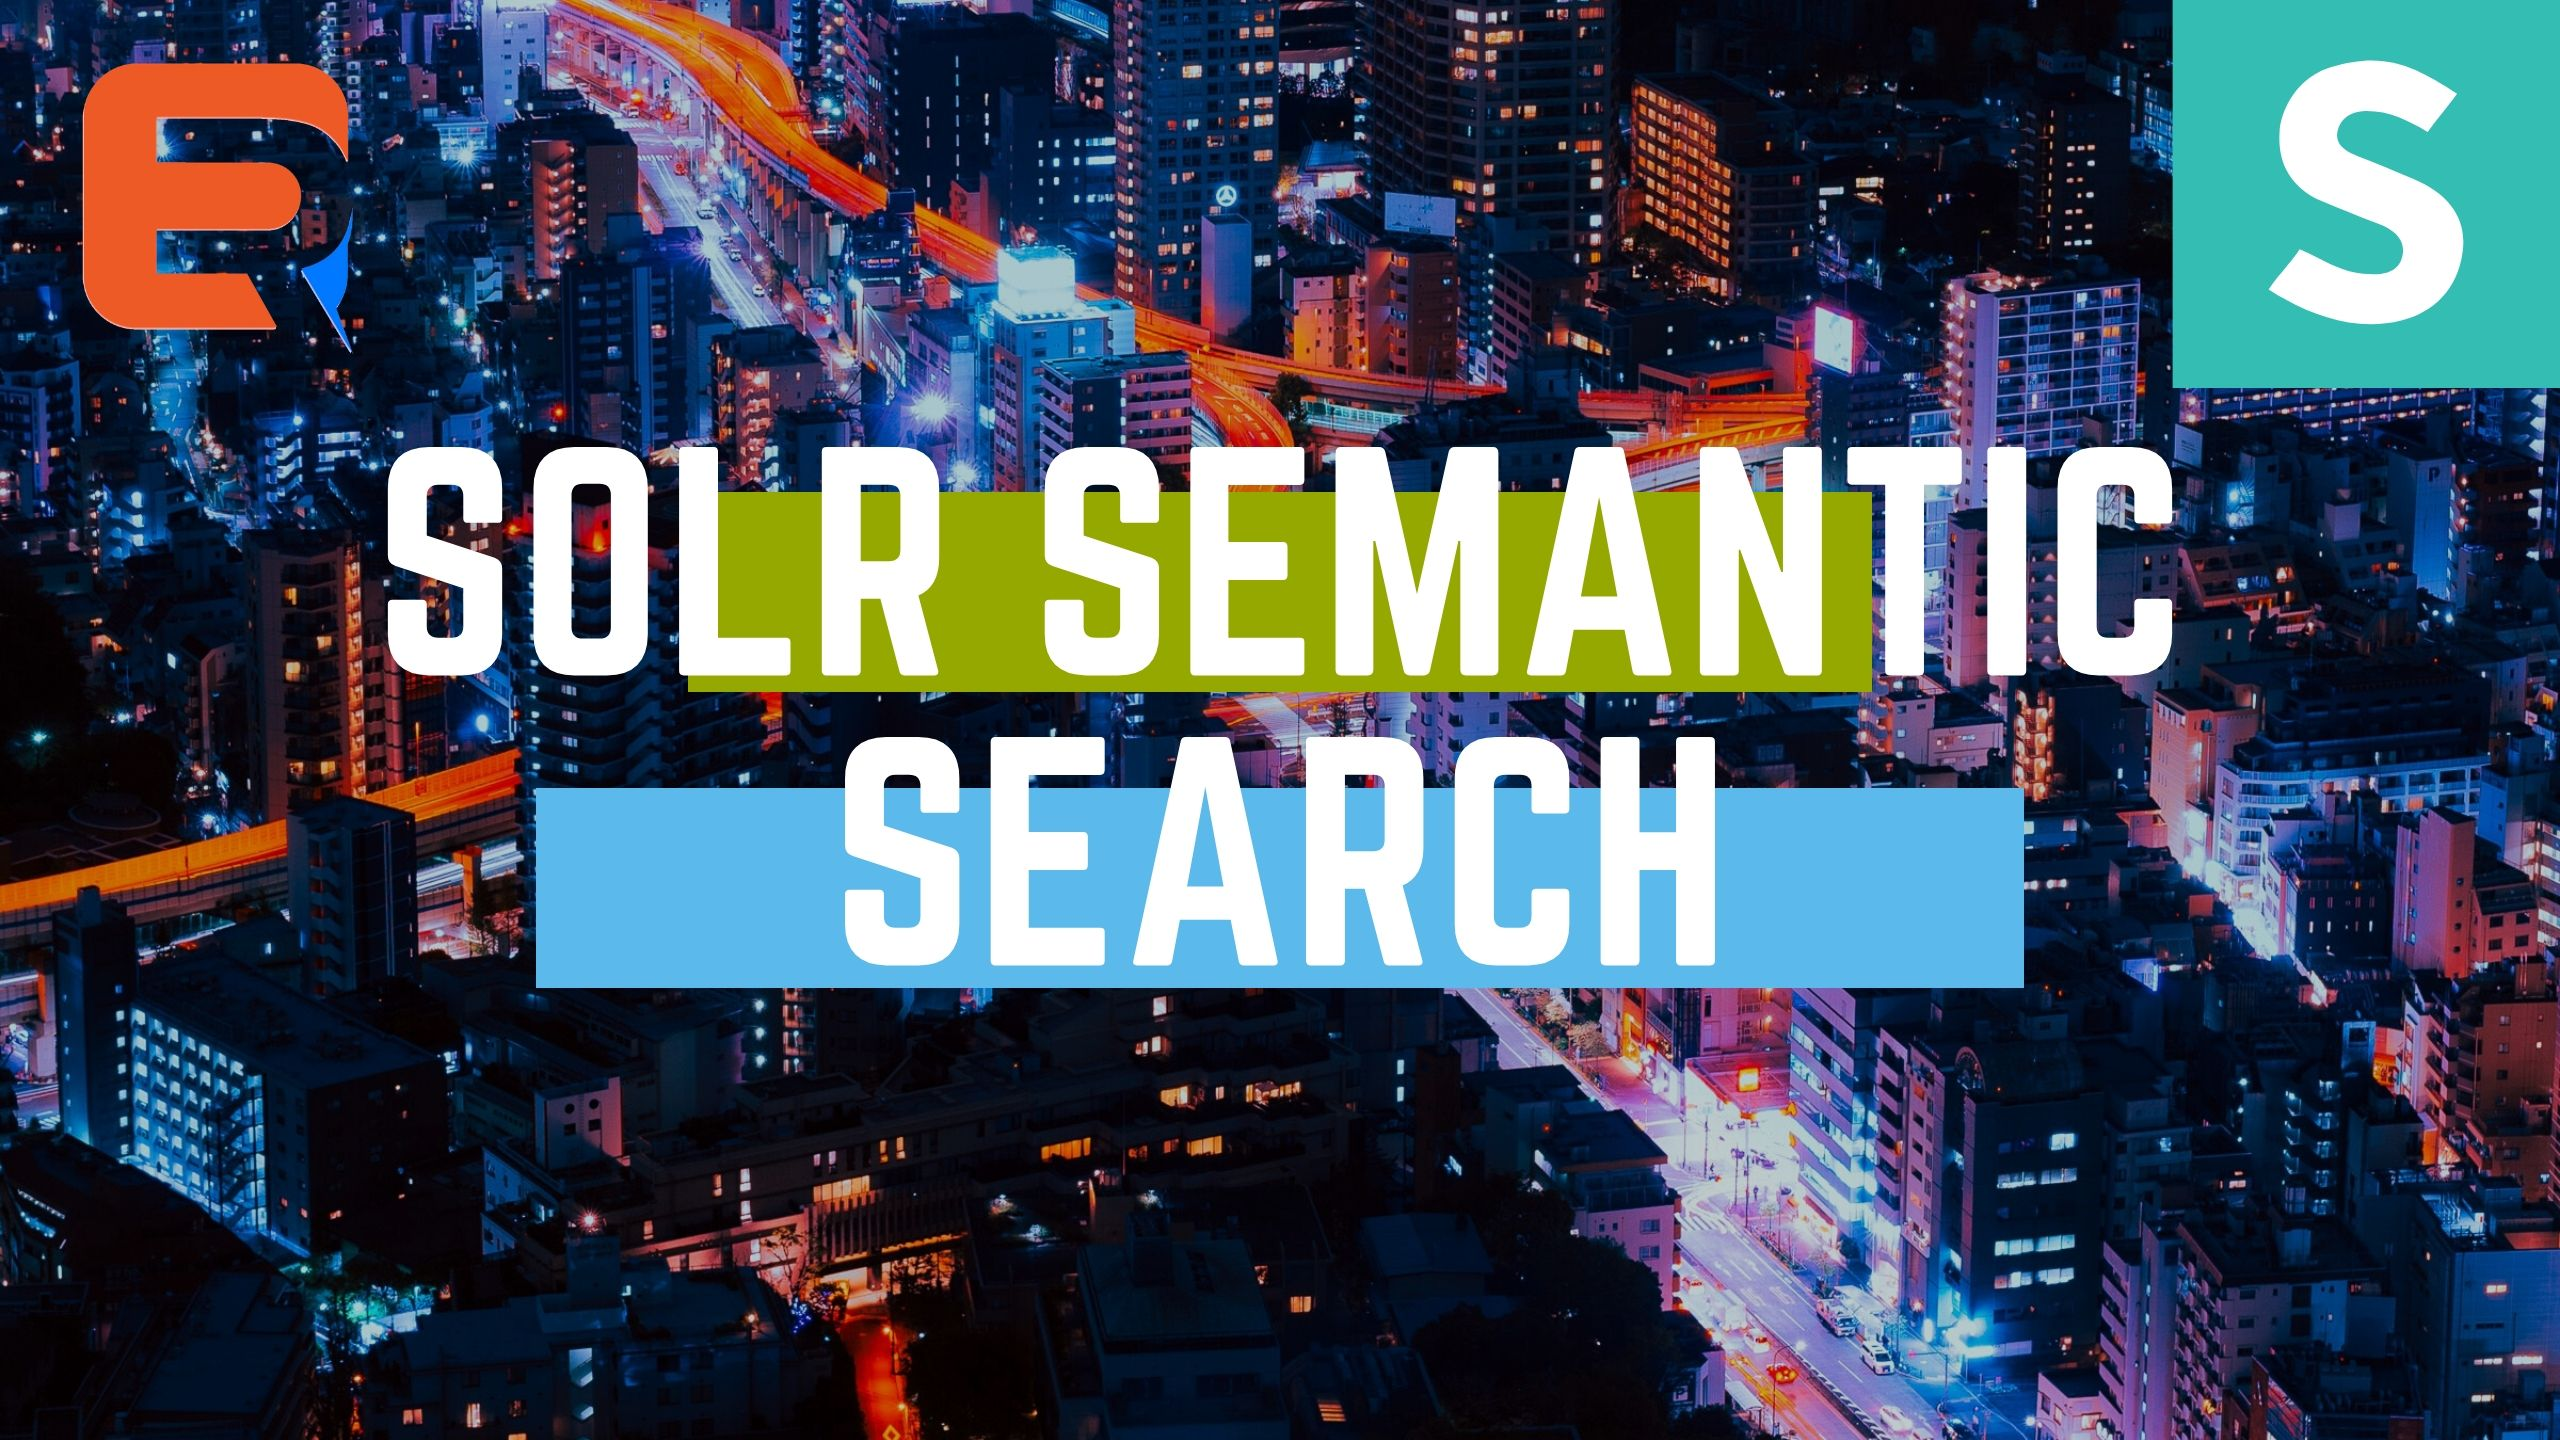 SOLR SEMANTIC SEARCH